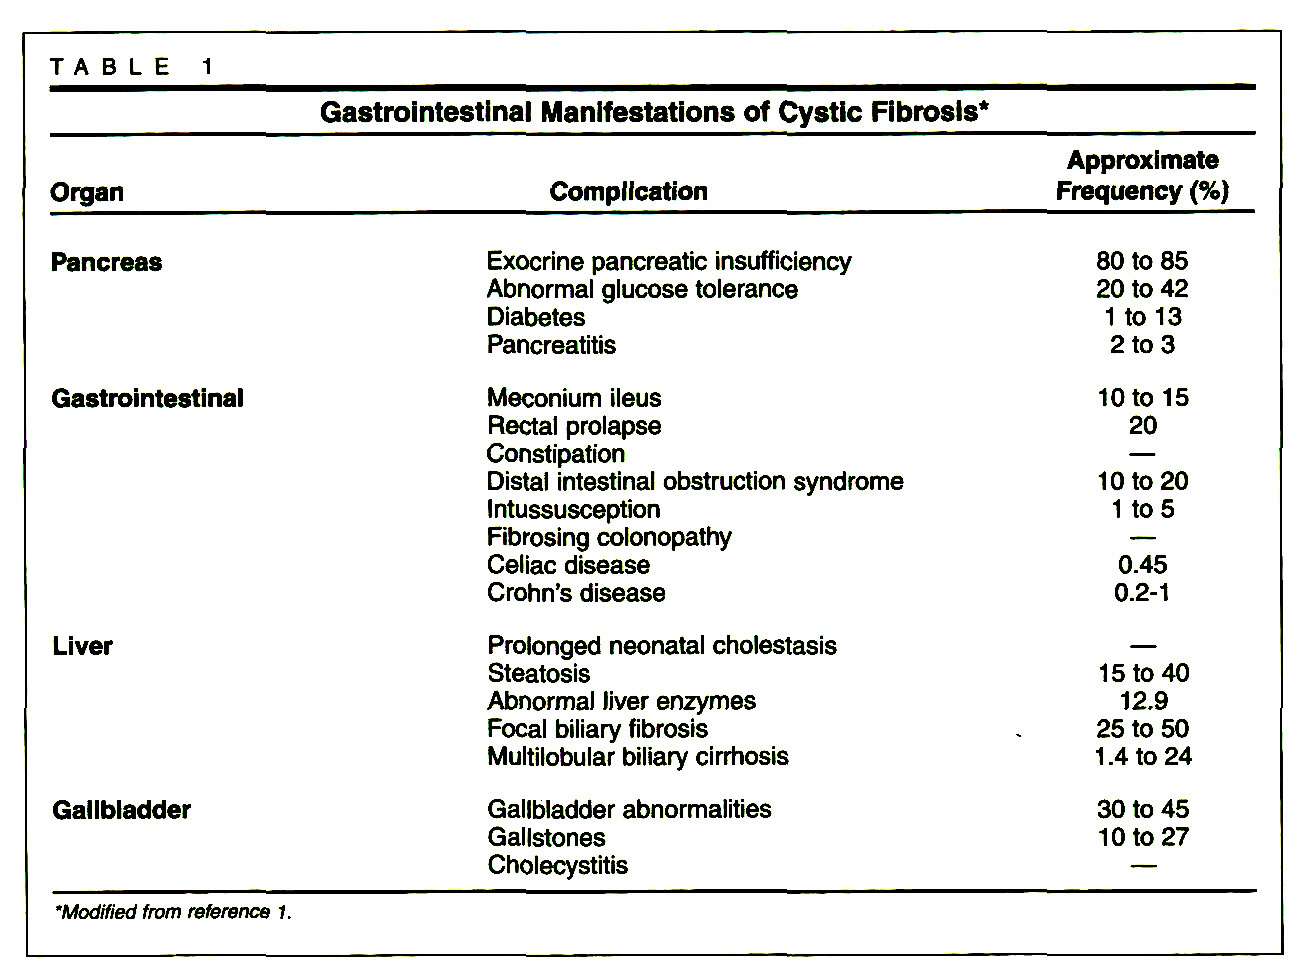 TABLE 1Gastrointestinal Manifestations of Cystic Fibrosis*